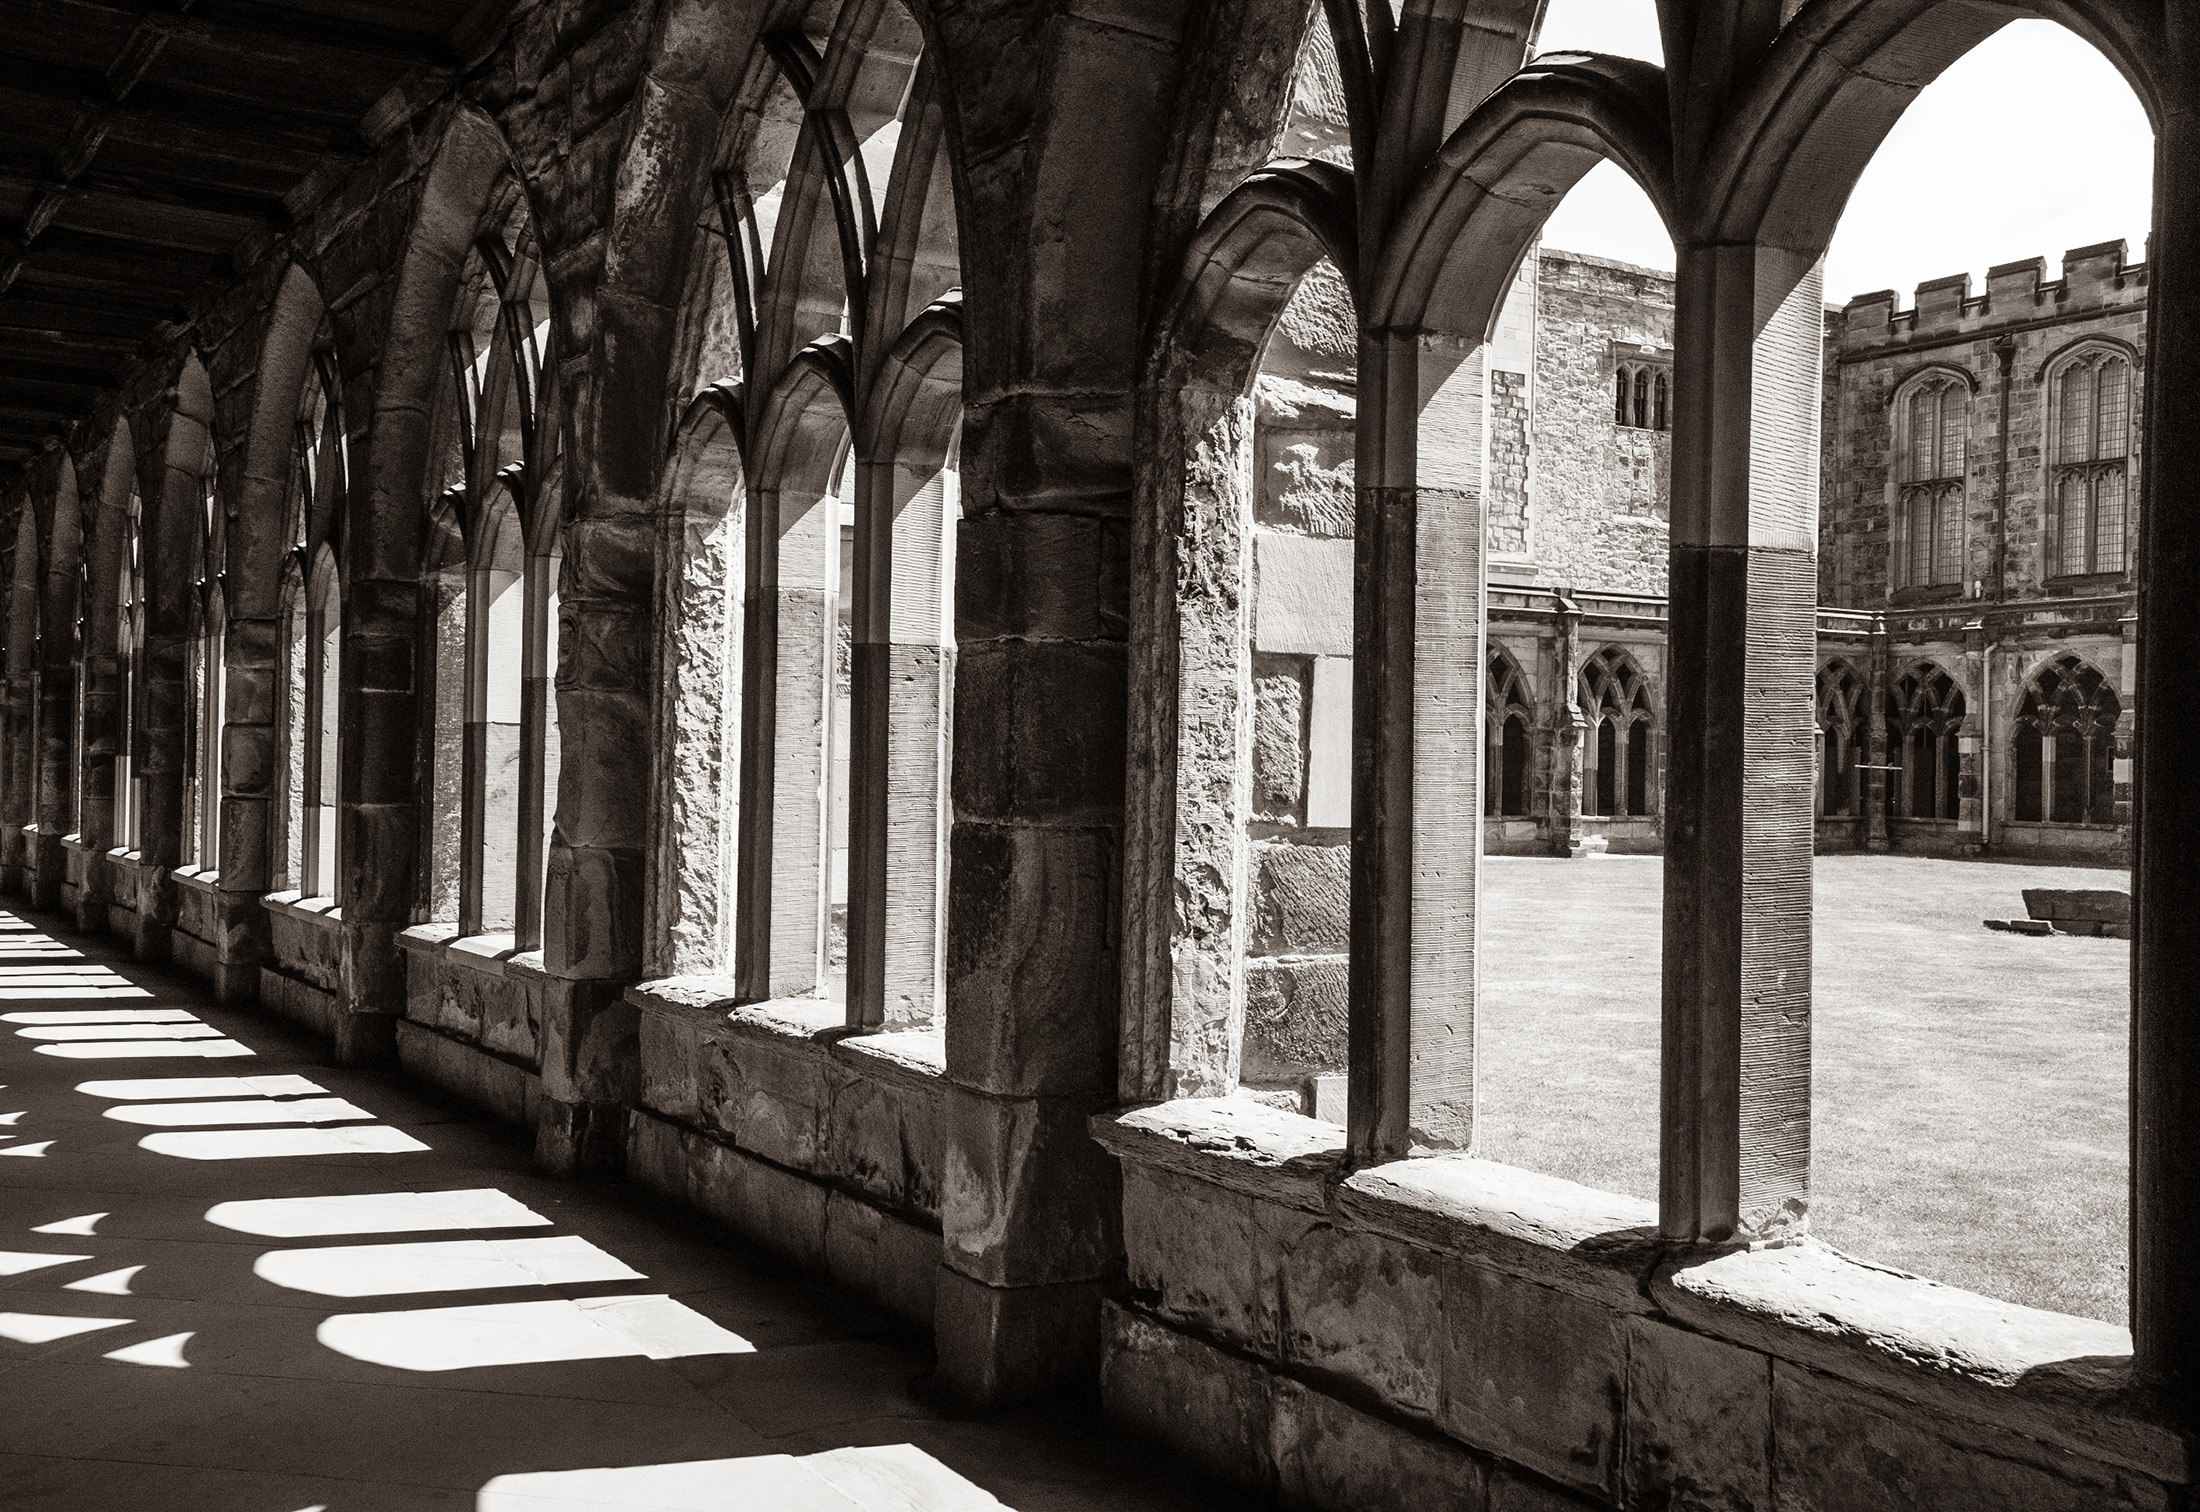 #durham, #durhamcathedral, #cloister, #harrypotter, #movie, #harrypottermovie, #school, #september, #sepia, #blackandwhite, #bw, #shadows, #architecture